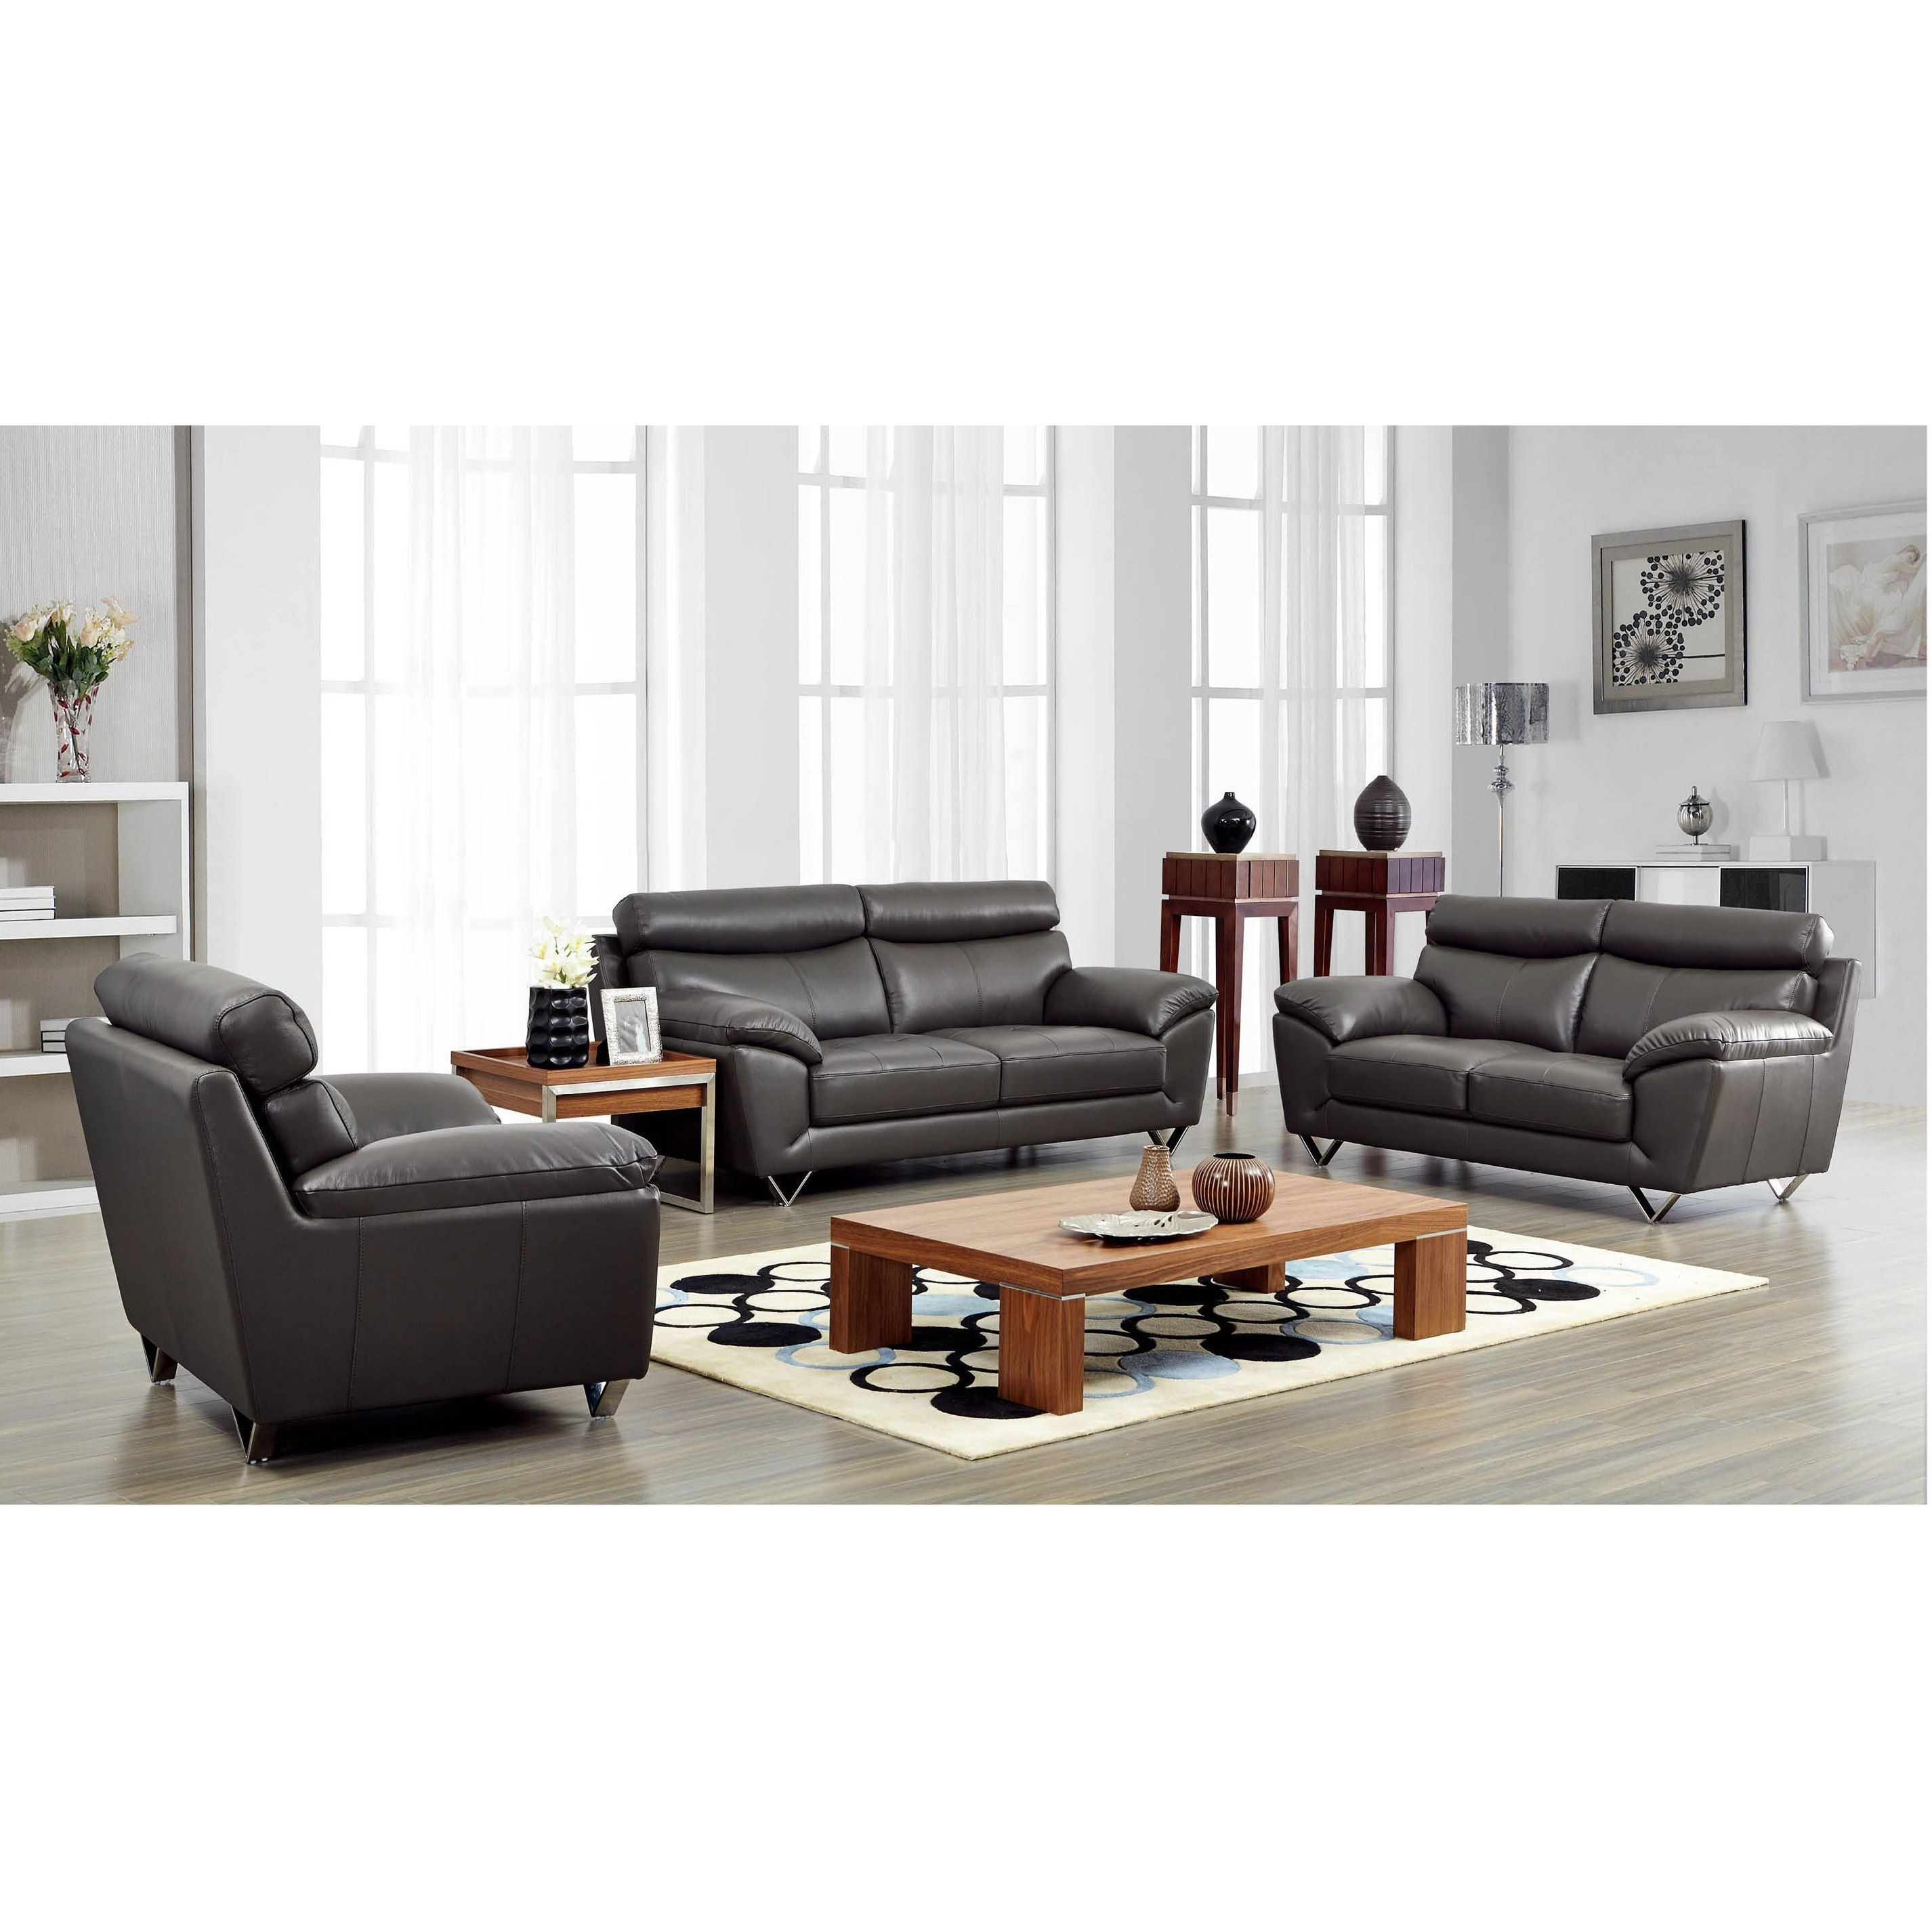 Luca Home Grey Sofa Loveseat and Chair Set Grey Sofa Loveseat and